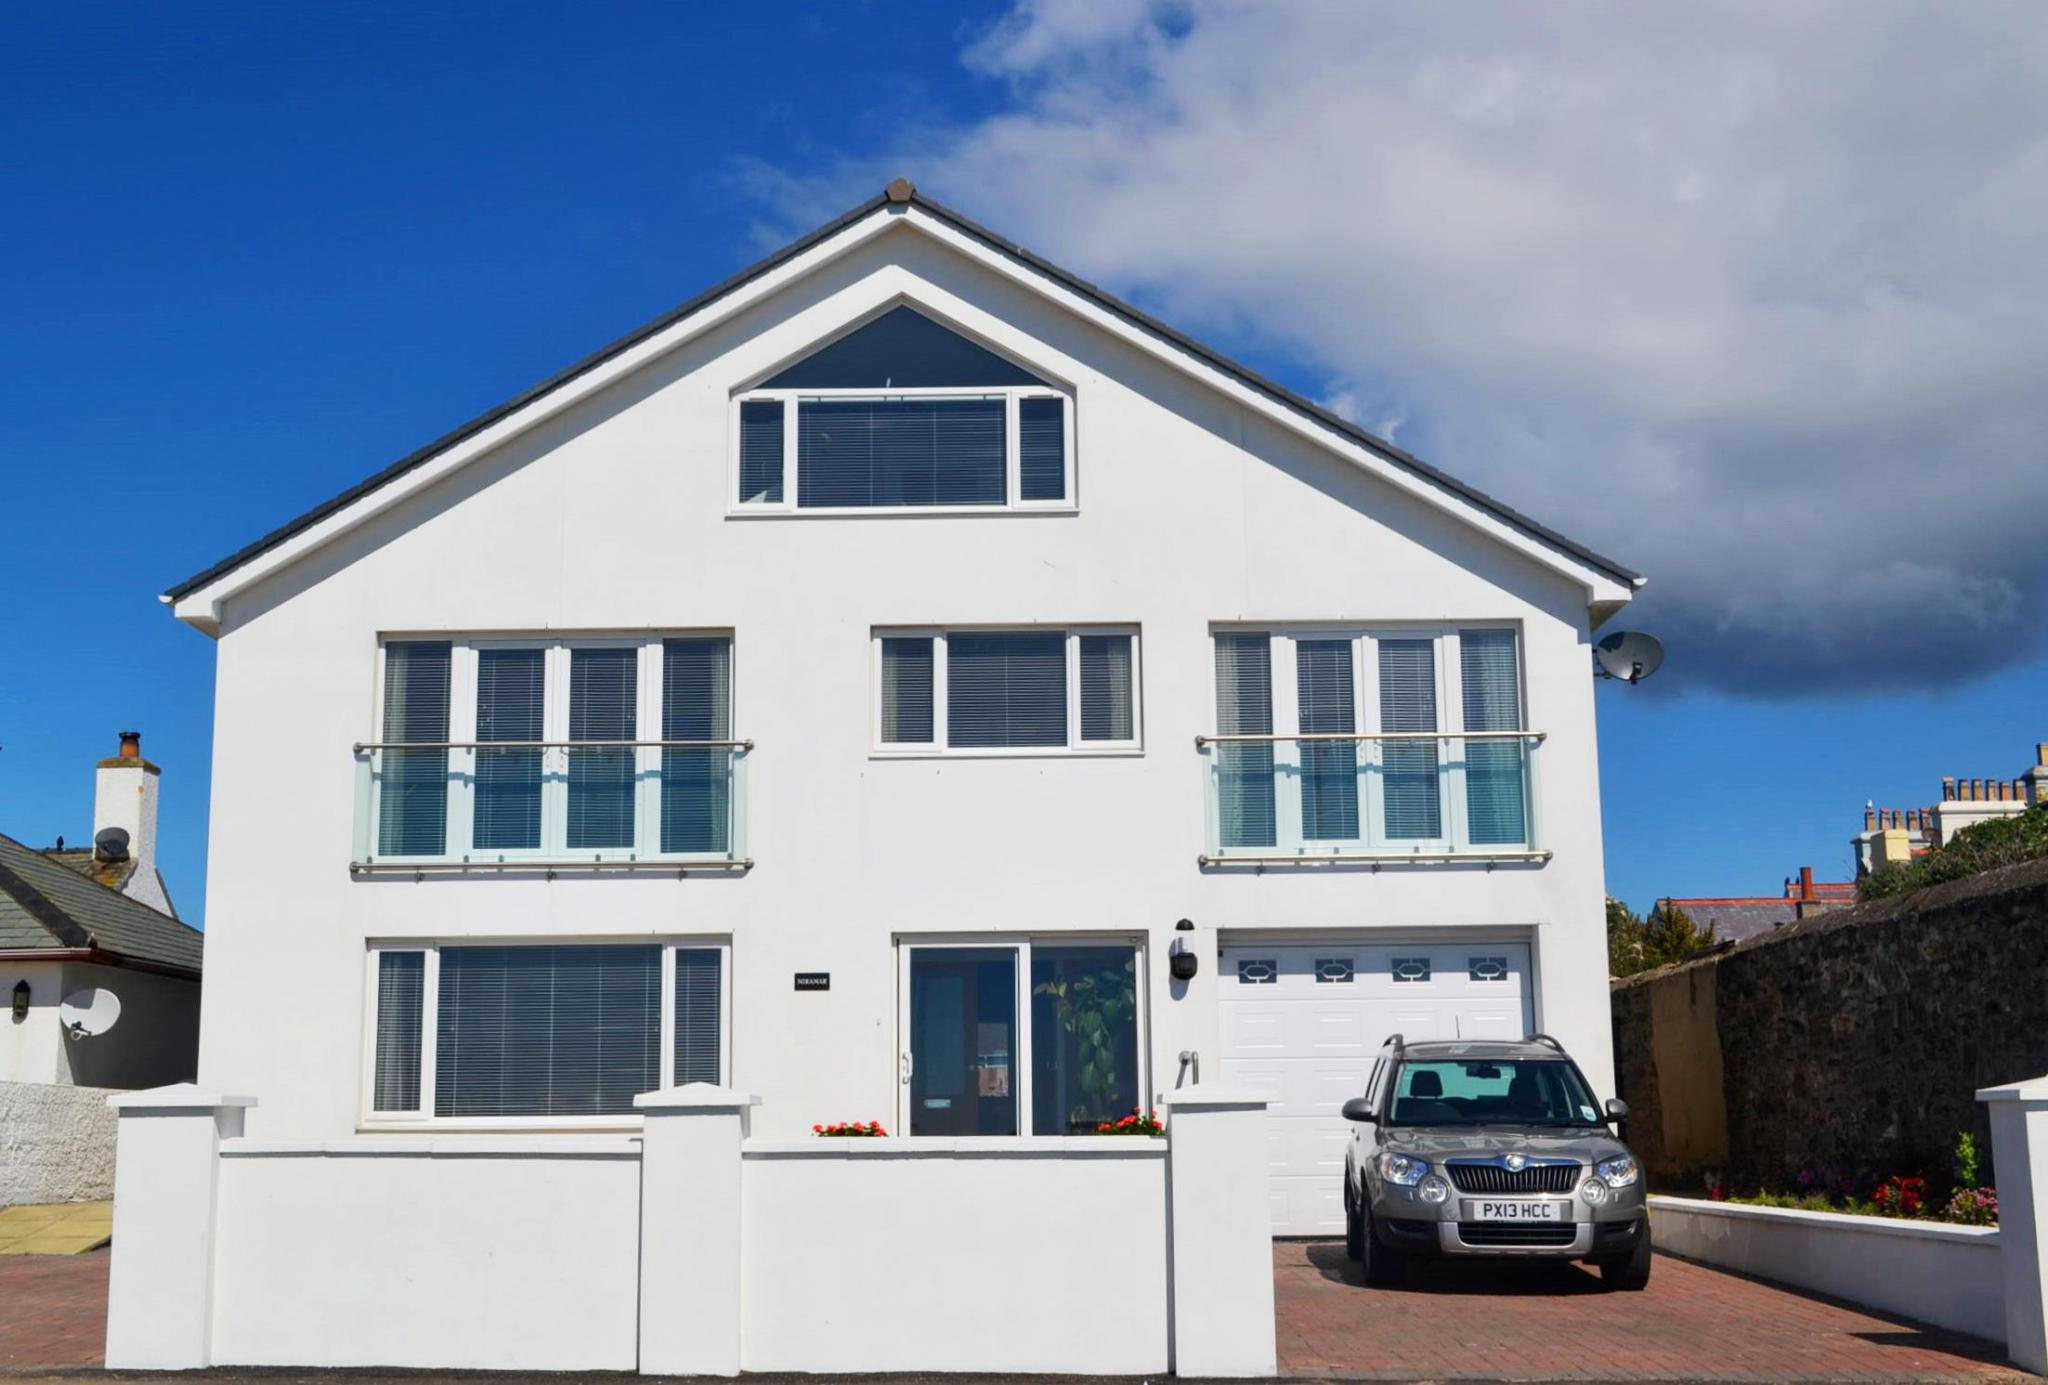 5 bedroom detached house For Sale in Port St Mary - Photograph 1